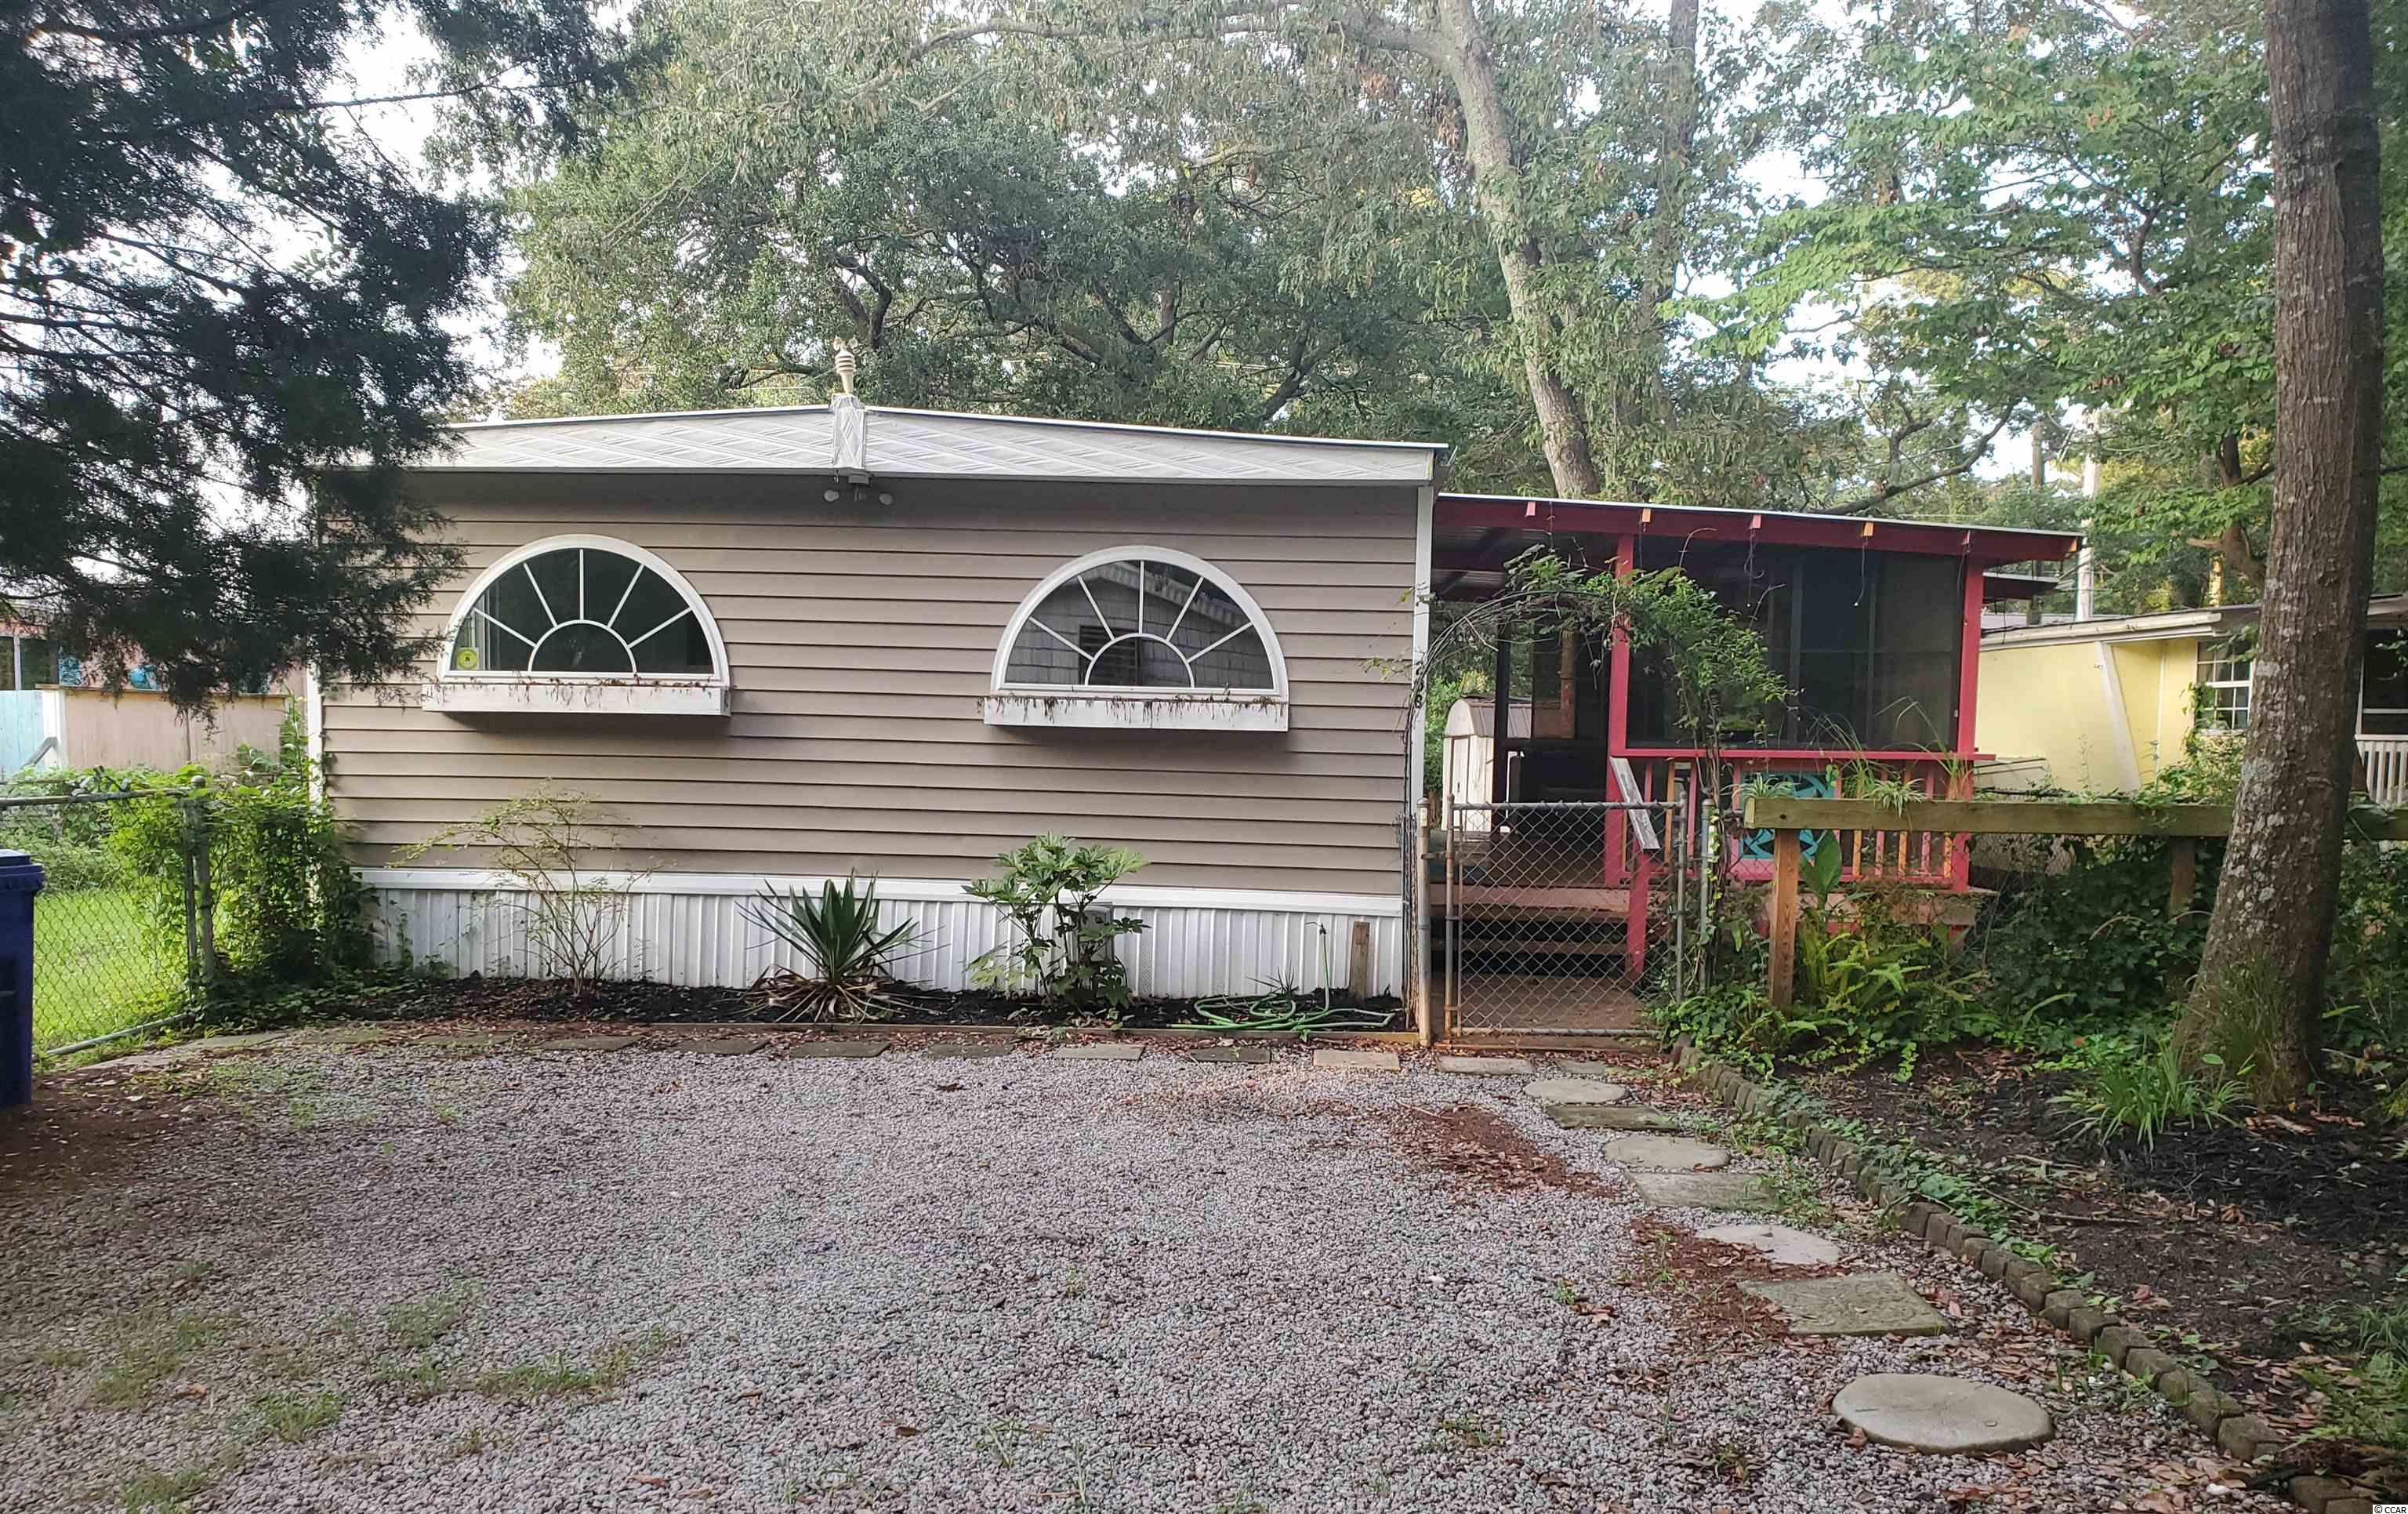 Great opportunity to live near the beach! Located East of 17 Business in Green Dolphin Mobile Home park. Home has 3 bedroom 2 full bath with open concept living/dining area. Covered entry with spacious attached porch is perfect for relaxing outdoors. New Metal roof 2017, new flooring, cabinetry and windows throughout. Home also has a fenced in yard and is golf cart distance to Surfside Beach. On Leased land. Schedule your showing today!